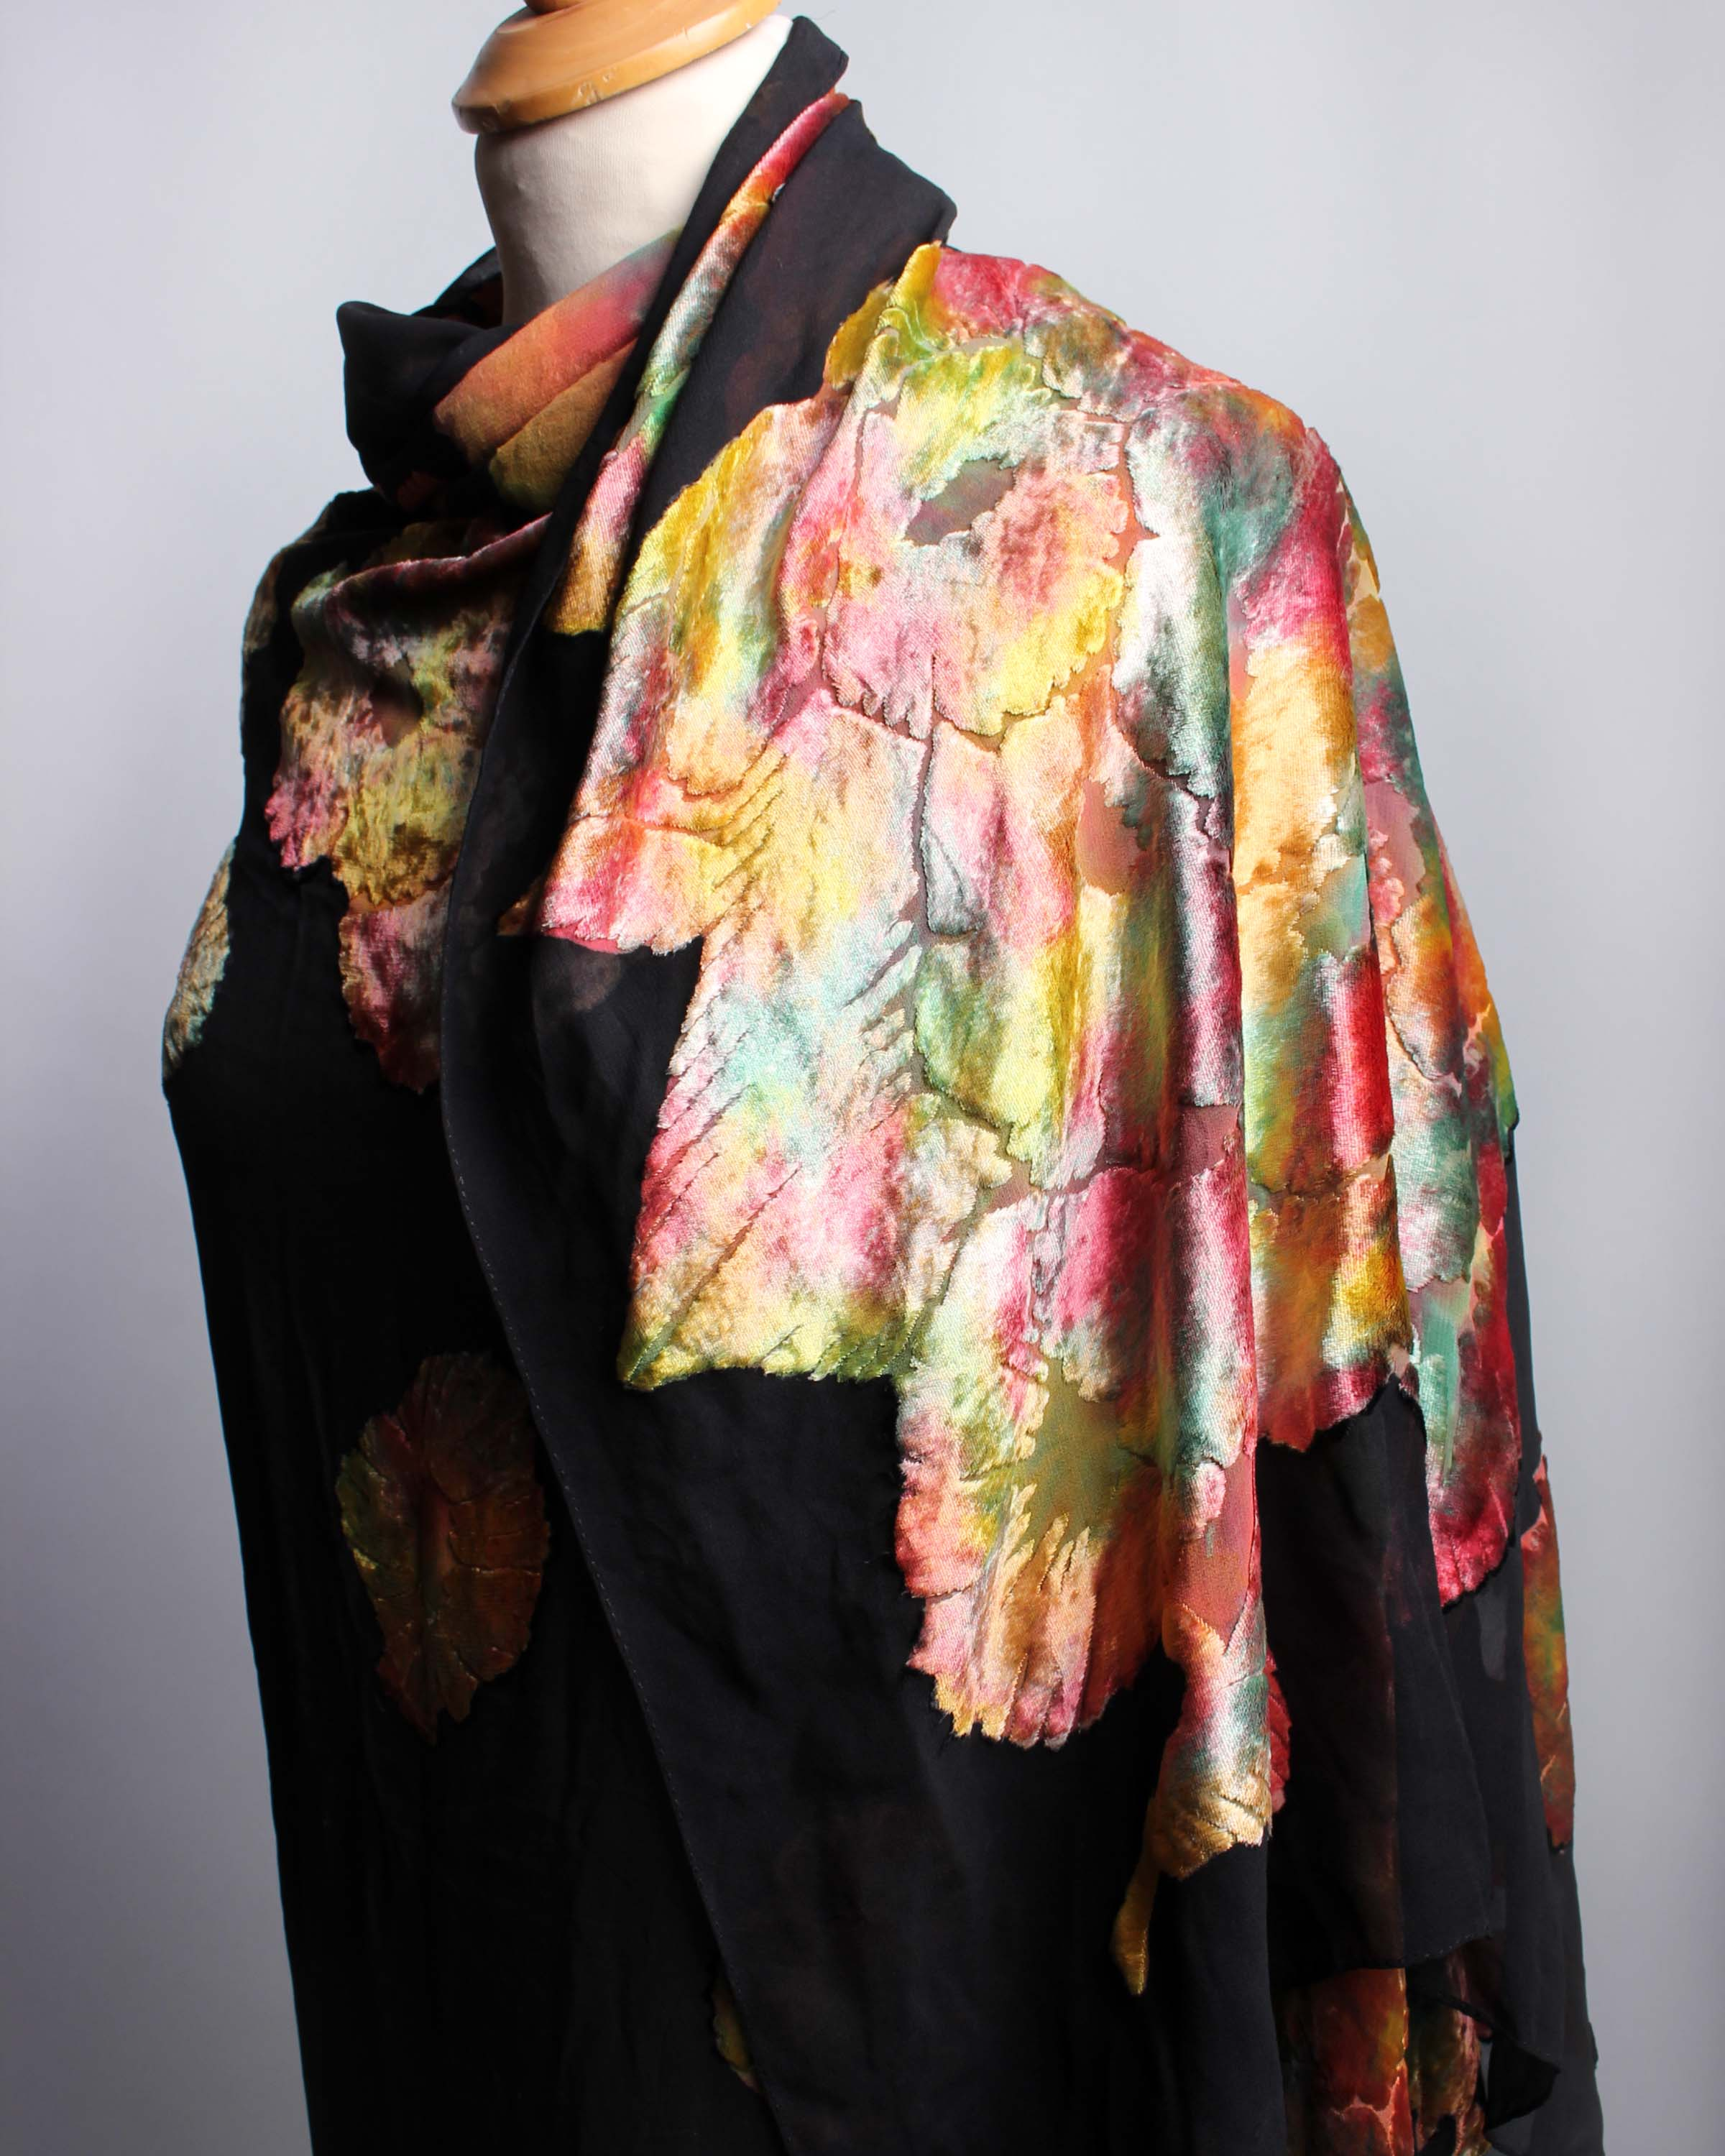 Lot 48 - An early 20th Century black silk devoré shawl, decorated with stylised brightly coloured flowers.